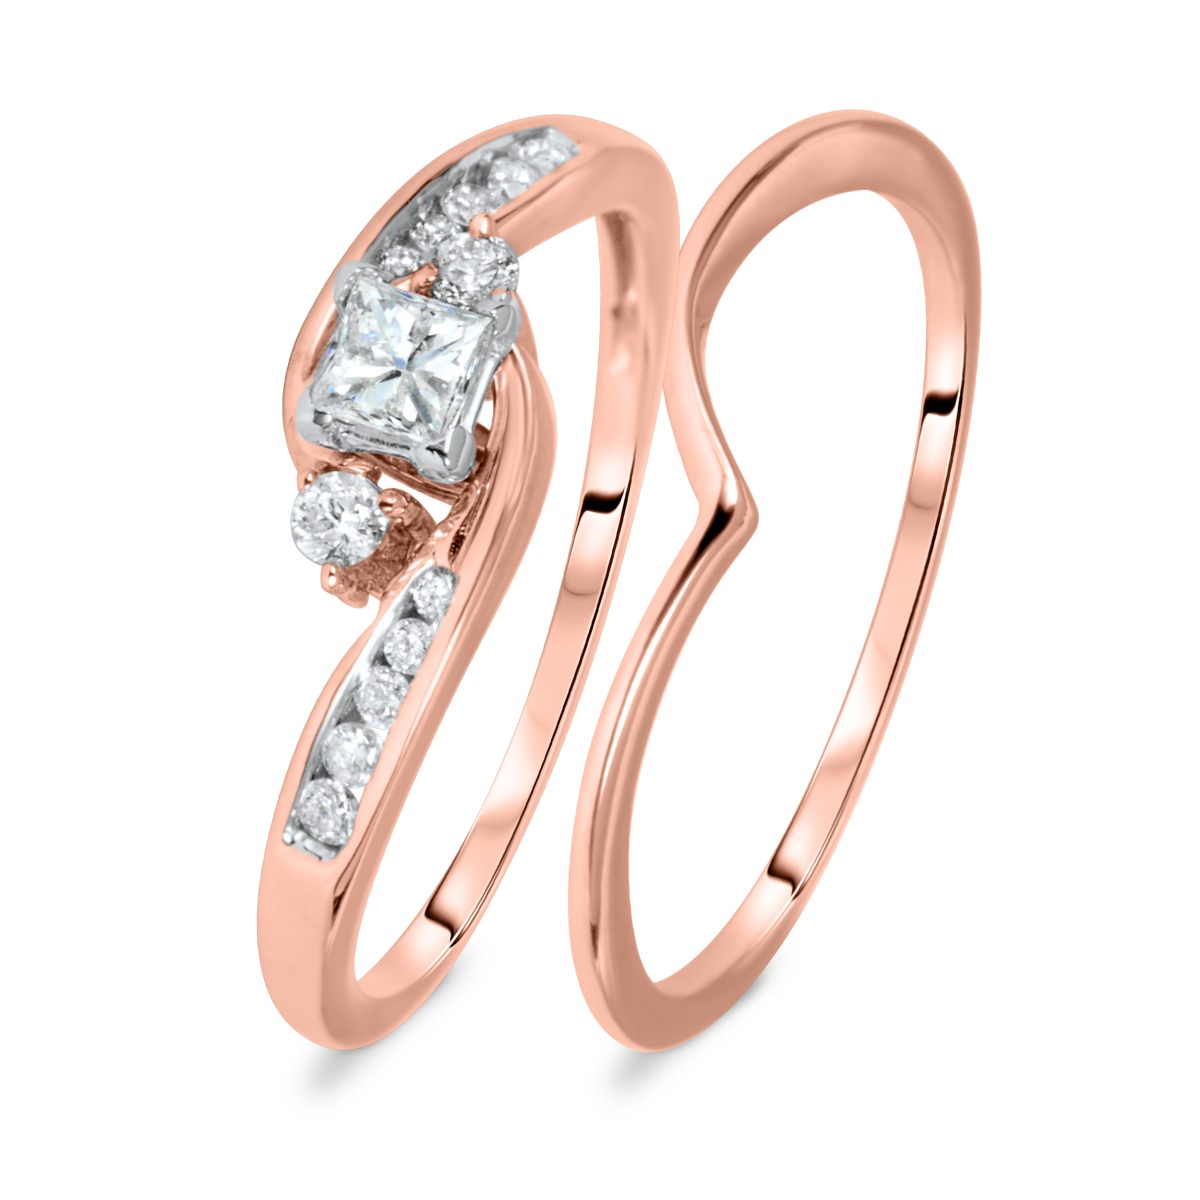 1/2 CT. T.W. Round, Princess Cut Diamond Ladies Bridal Ring Set 10K Rose Gold